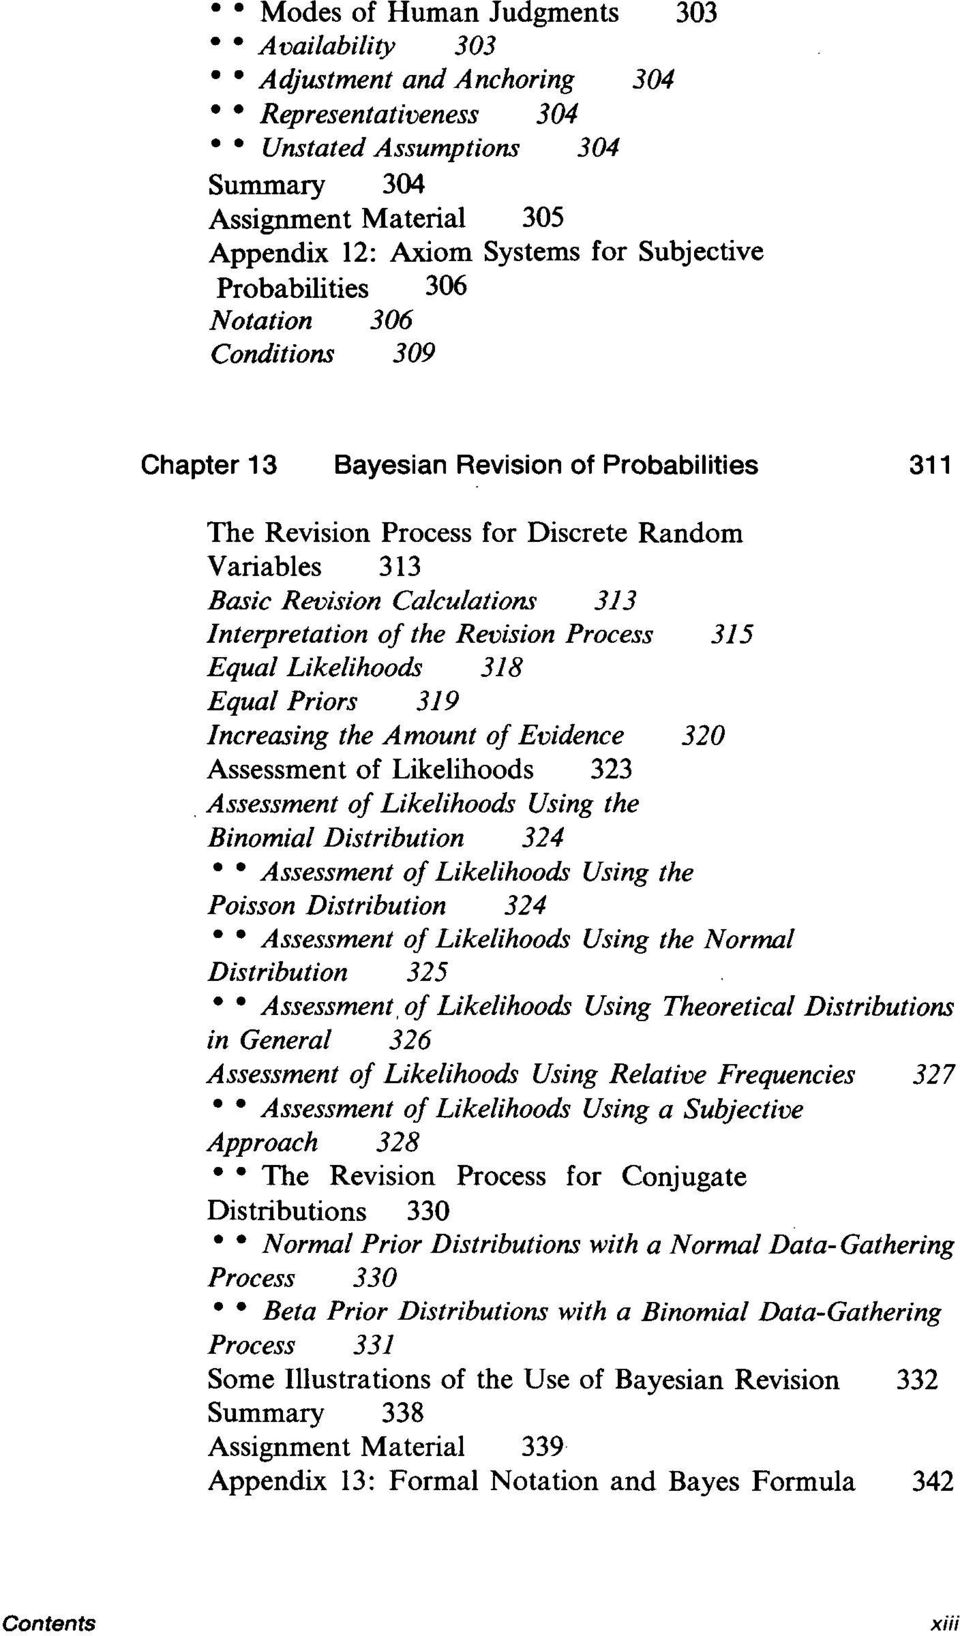 Interpretation of the Revision Process 315 Equal Likelihoods 318 Equal Priors 319 Increasing the Amount of Evidence 320 Assessment of Likelihoods 323 Assessment of Likelihoods Using the Binomial